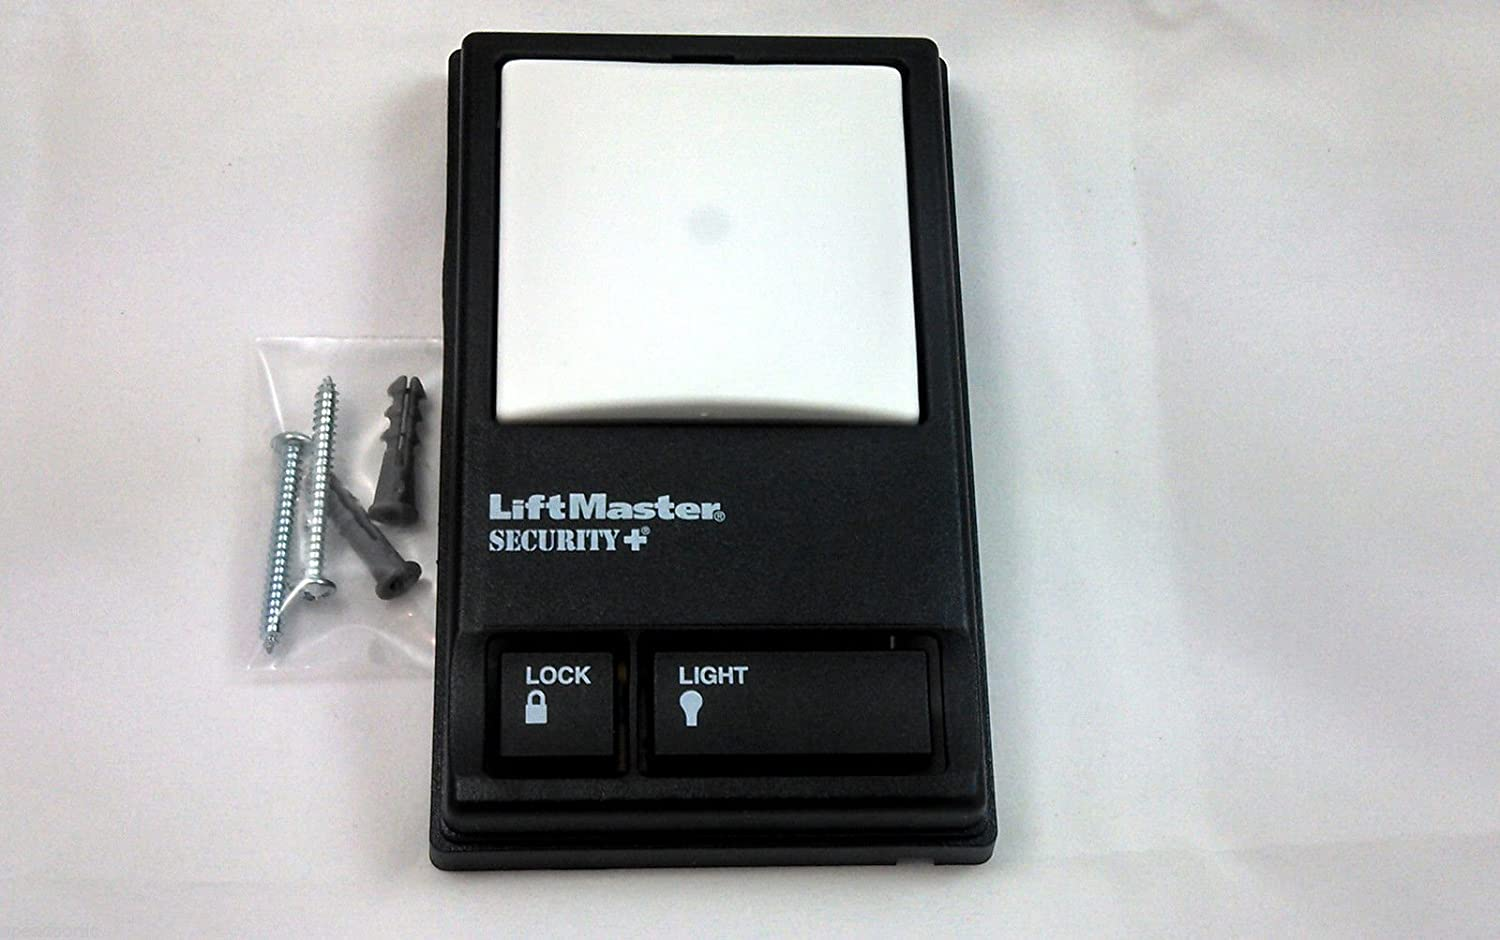 (Ship from USA) 41A5273-1 78LM-X LiftMaster Multi-function Garage Door Remote Control Panel /ITEM#H3NG UE-EW23D212478